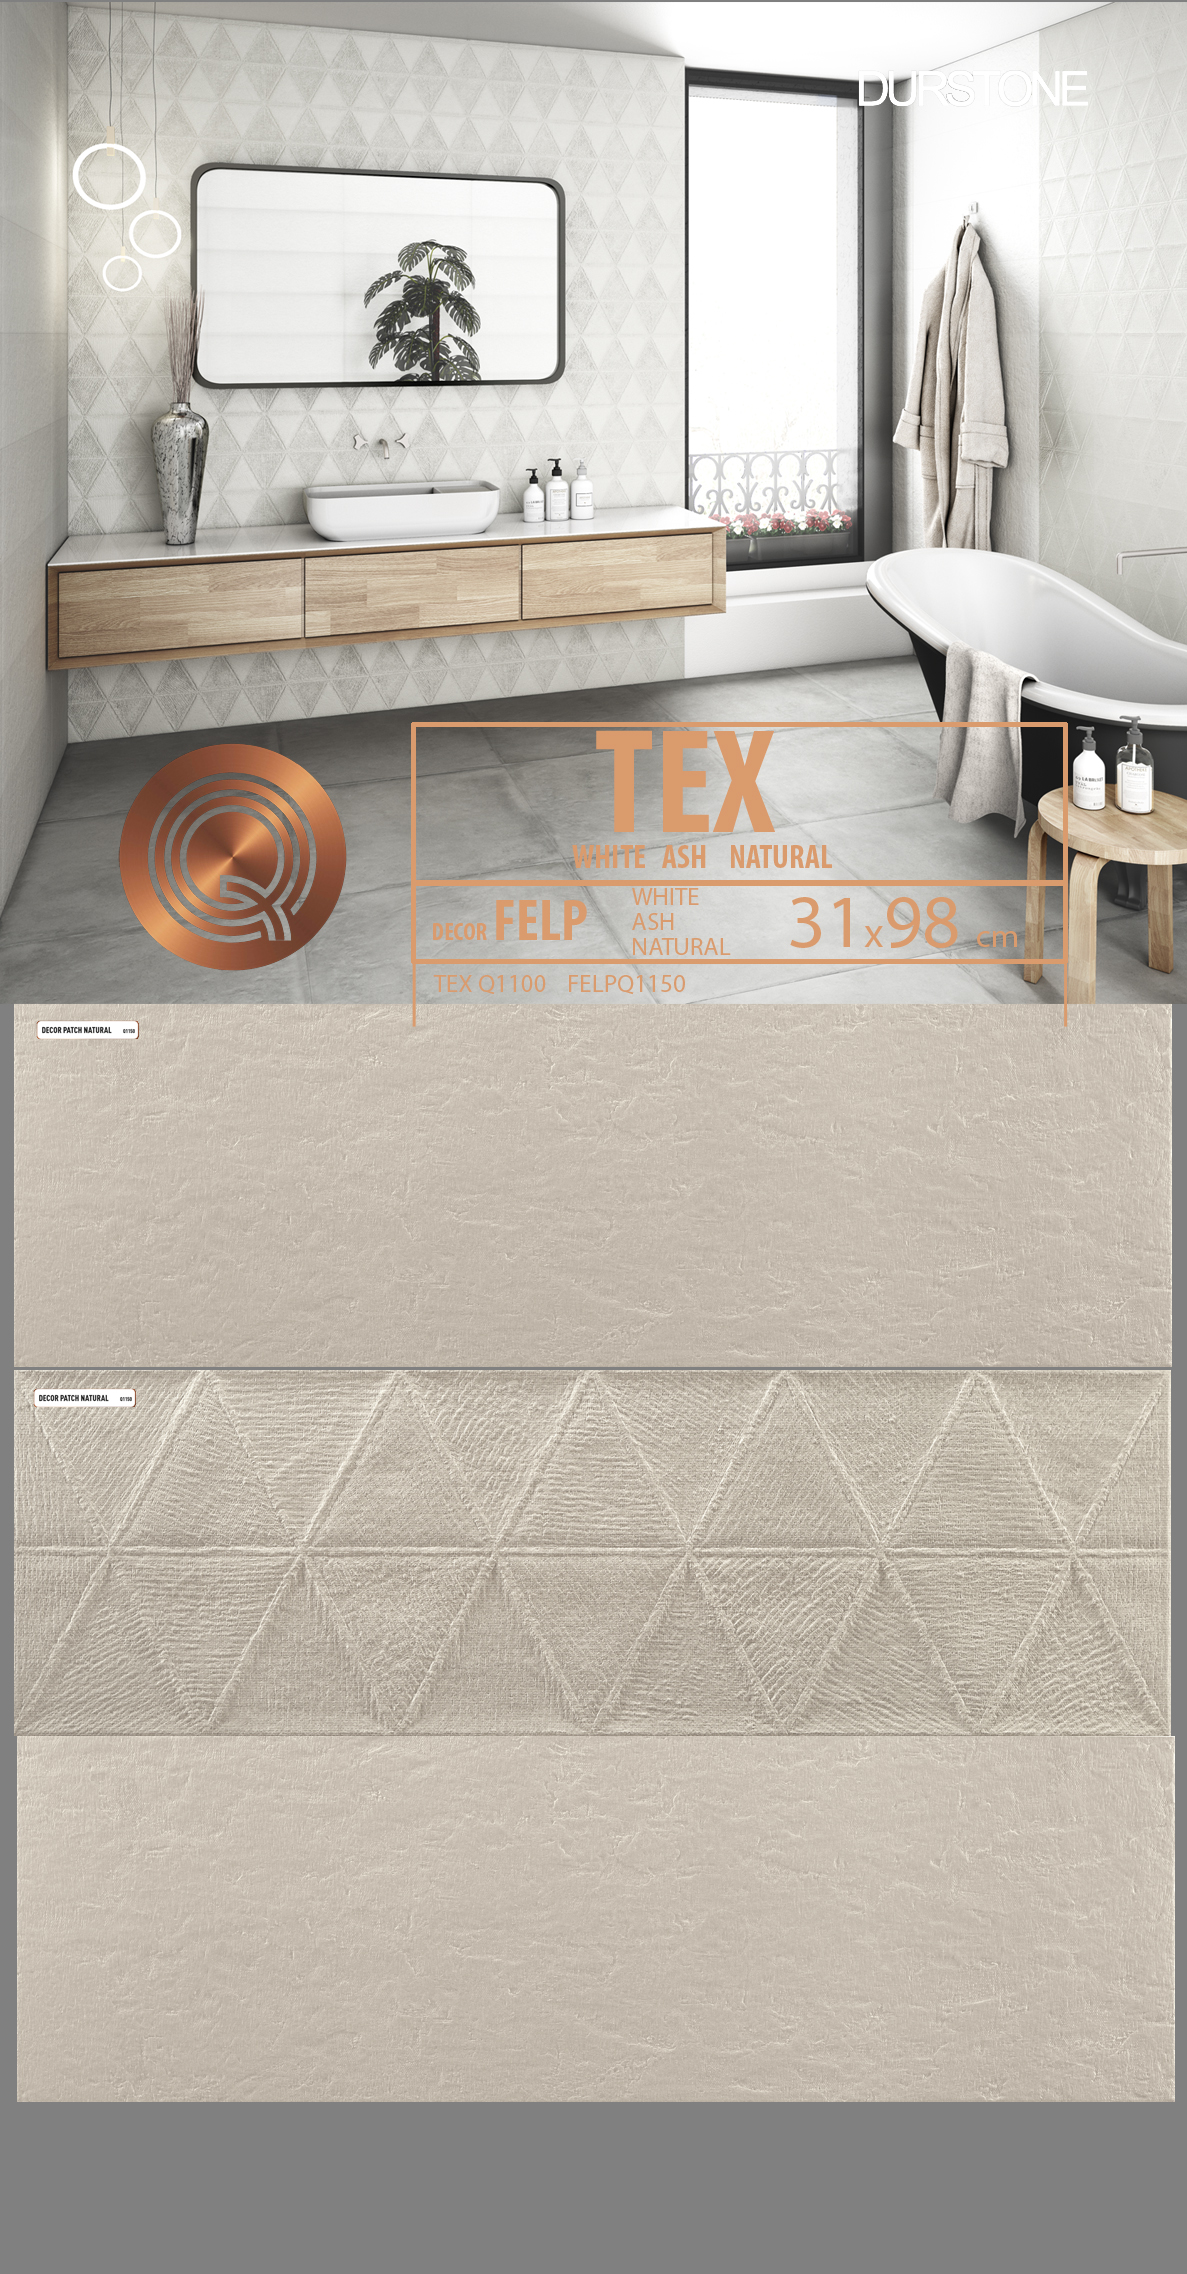 5266 RVM PANEL MIX TEX FELP NATURAL Cod. 5266